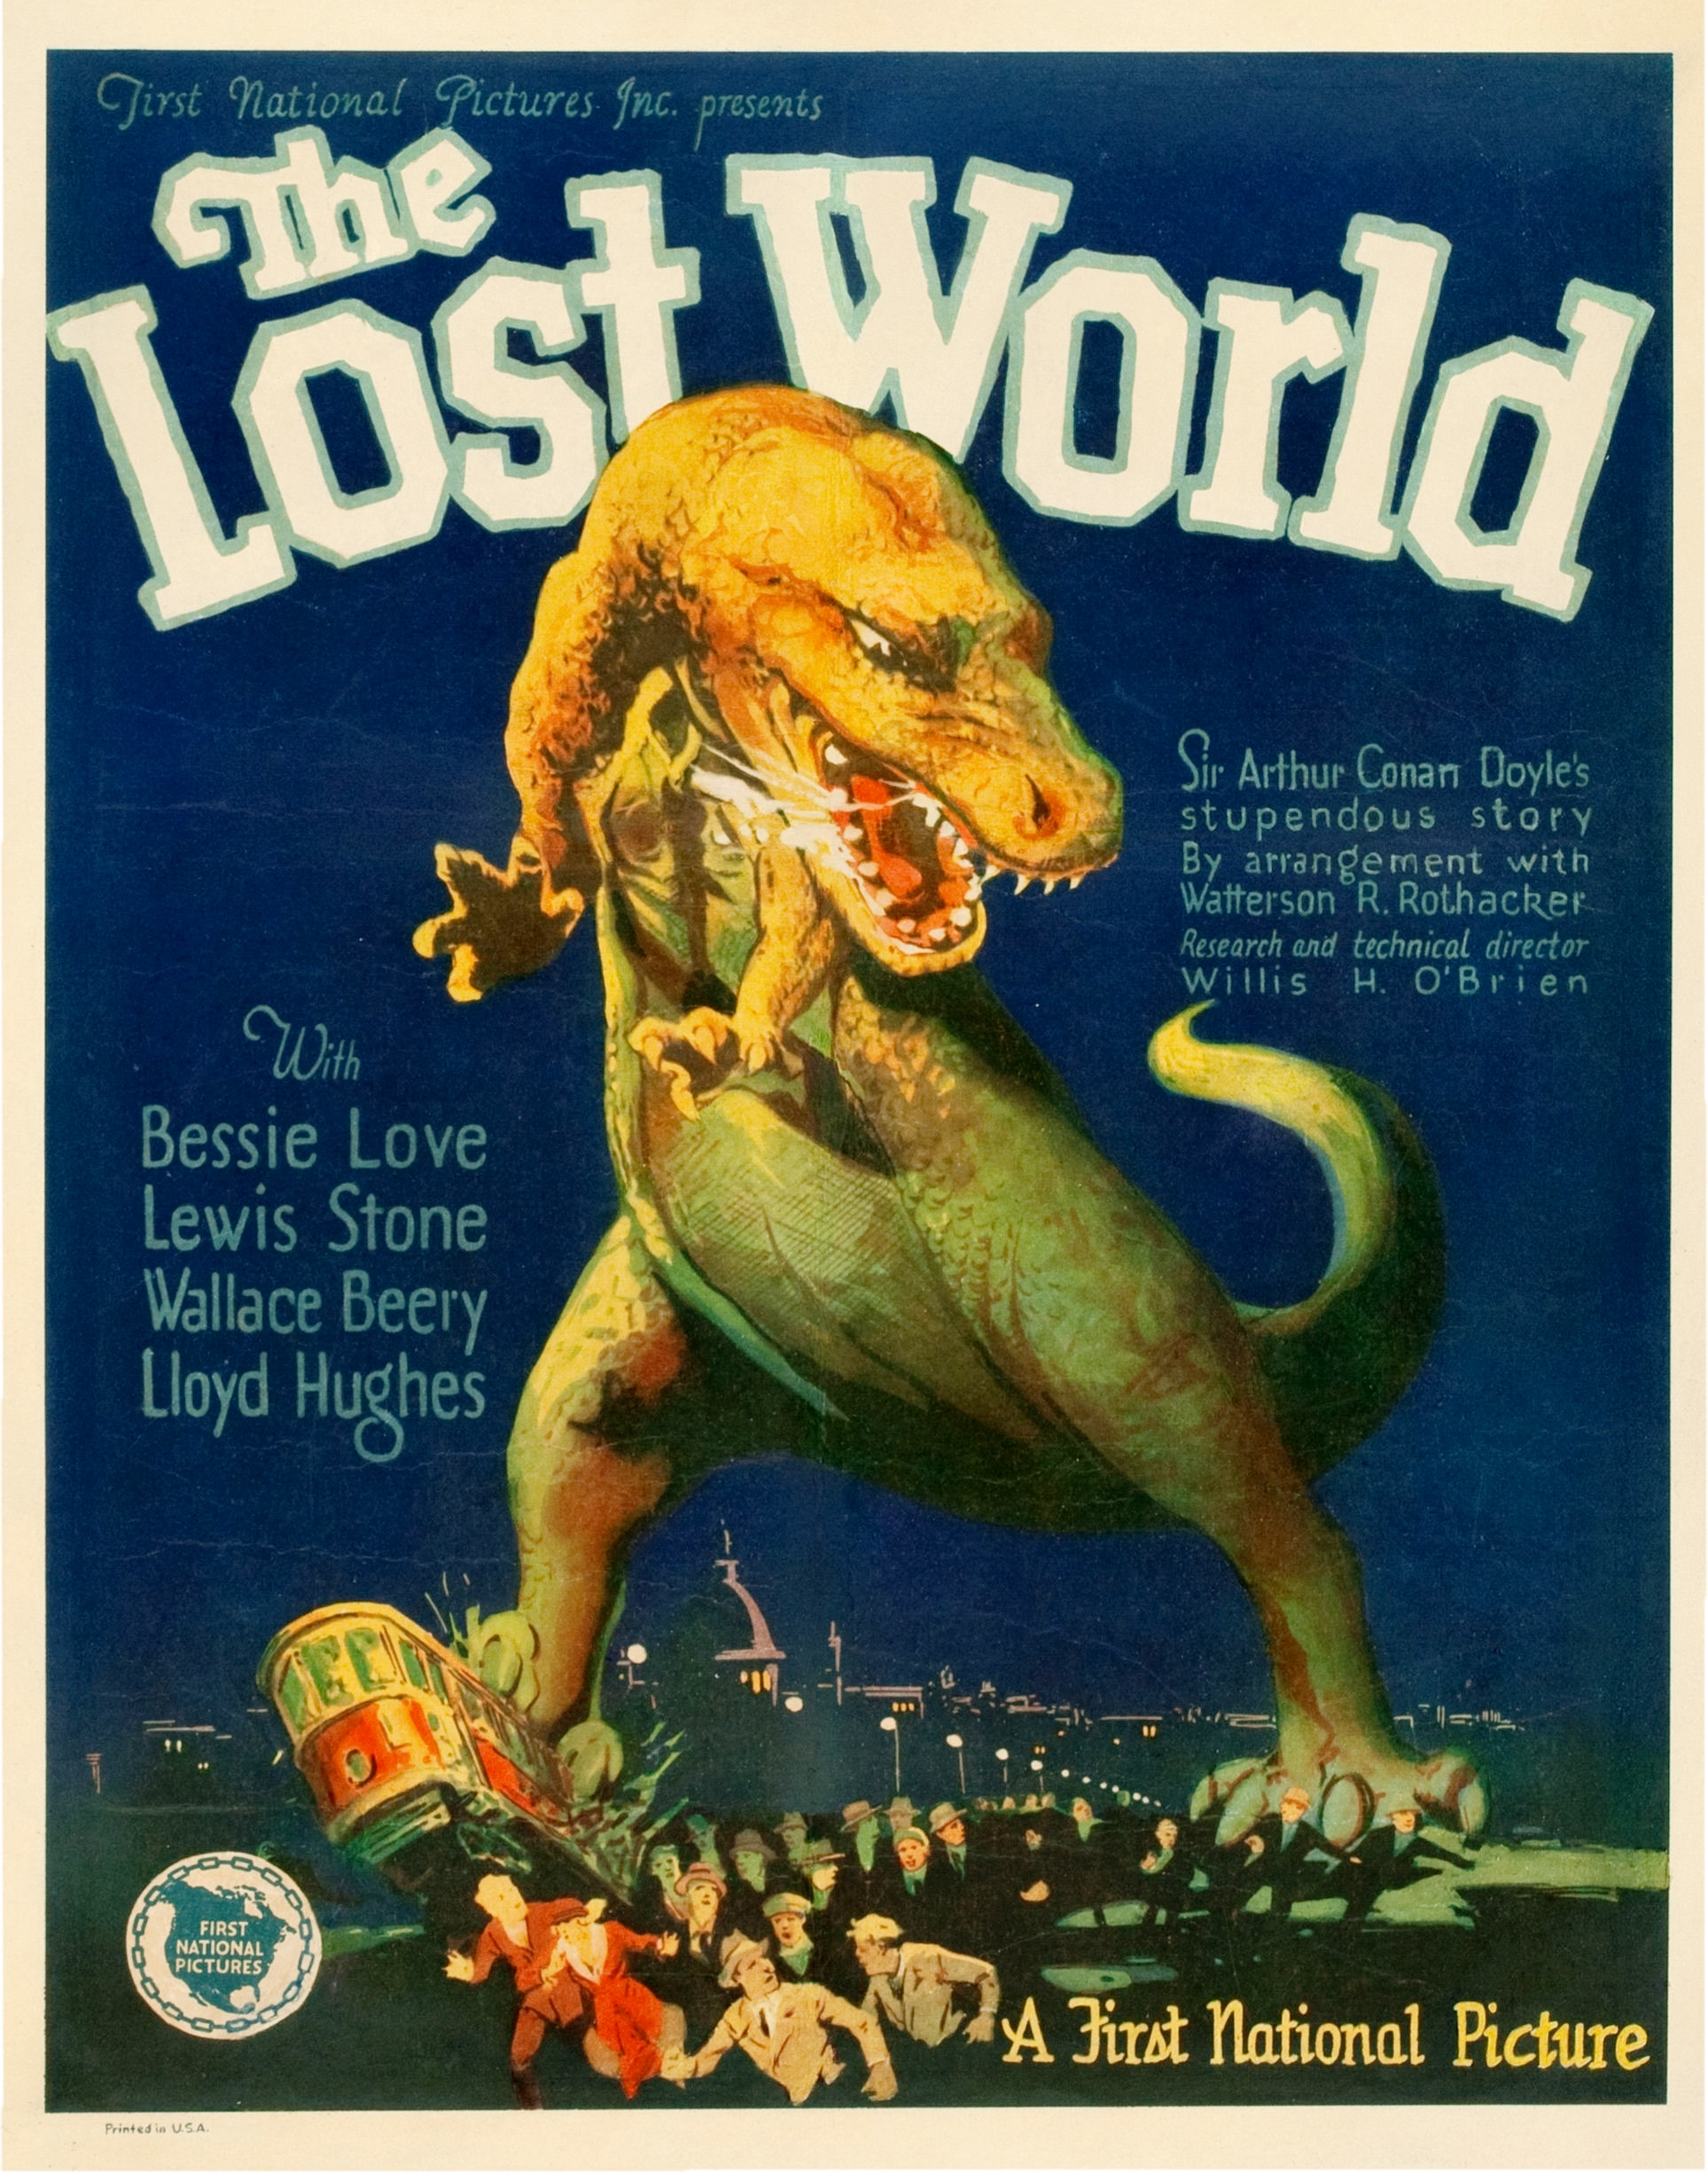 http://upload.wikimedia.org/wikipedia/commons/7/76/The_Lost_World_%281925%29_-_film_poster.jpg